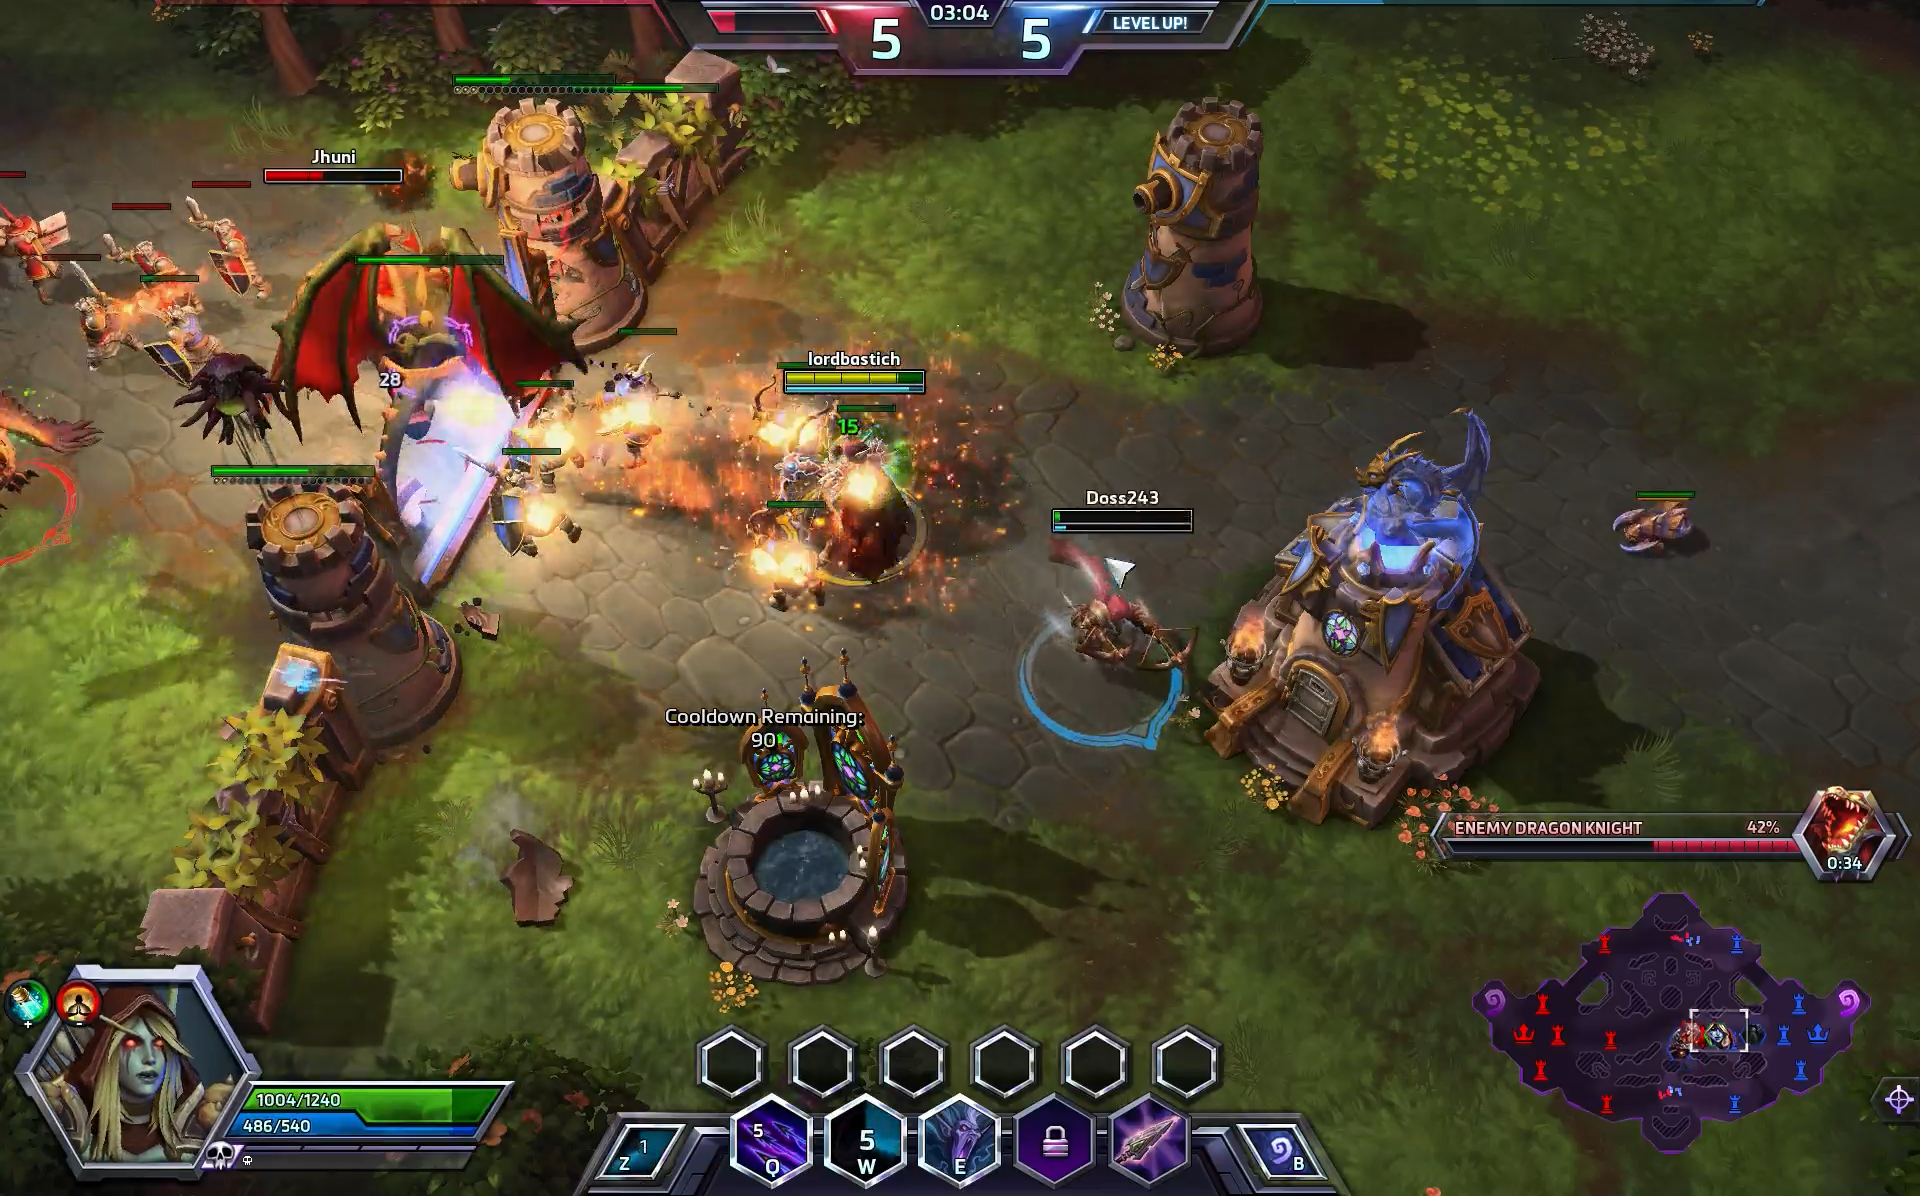 MOBA is a silly moniker, but consensus has made the term stick.